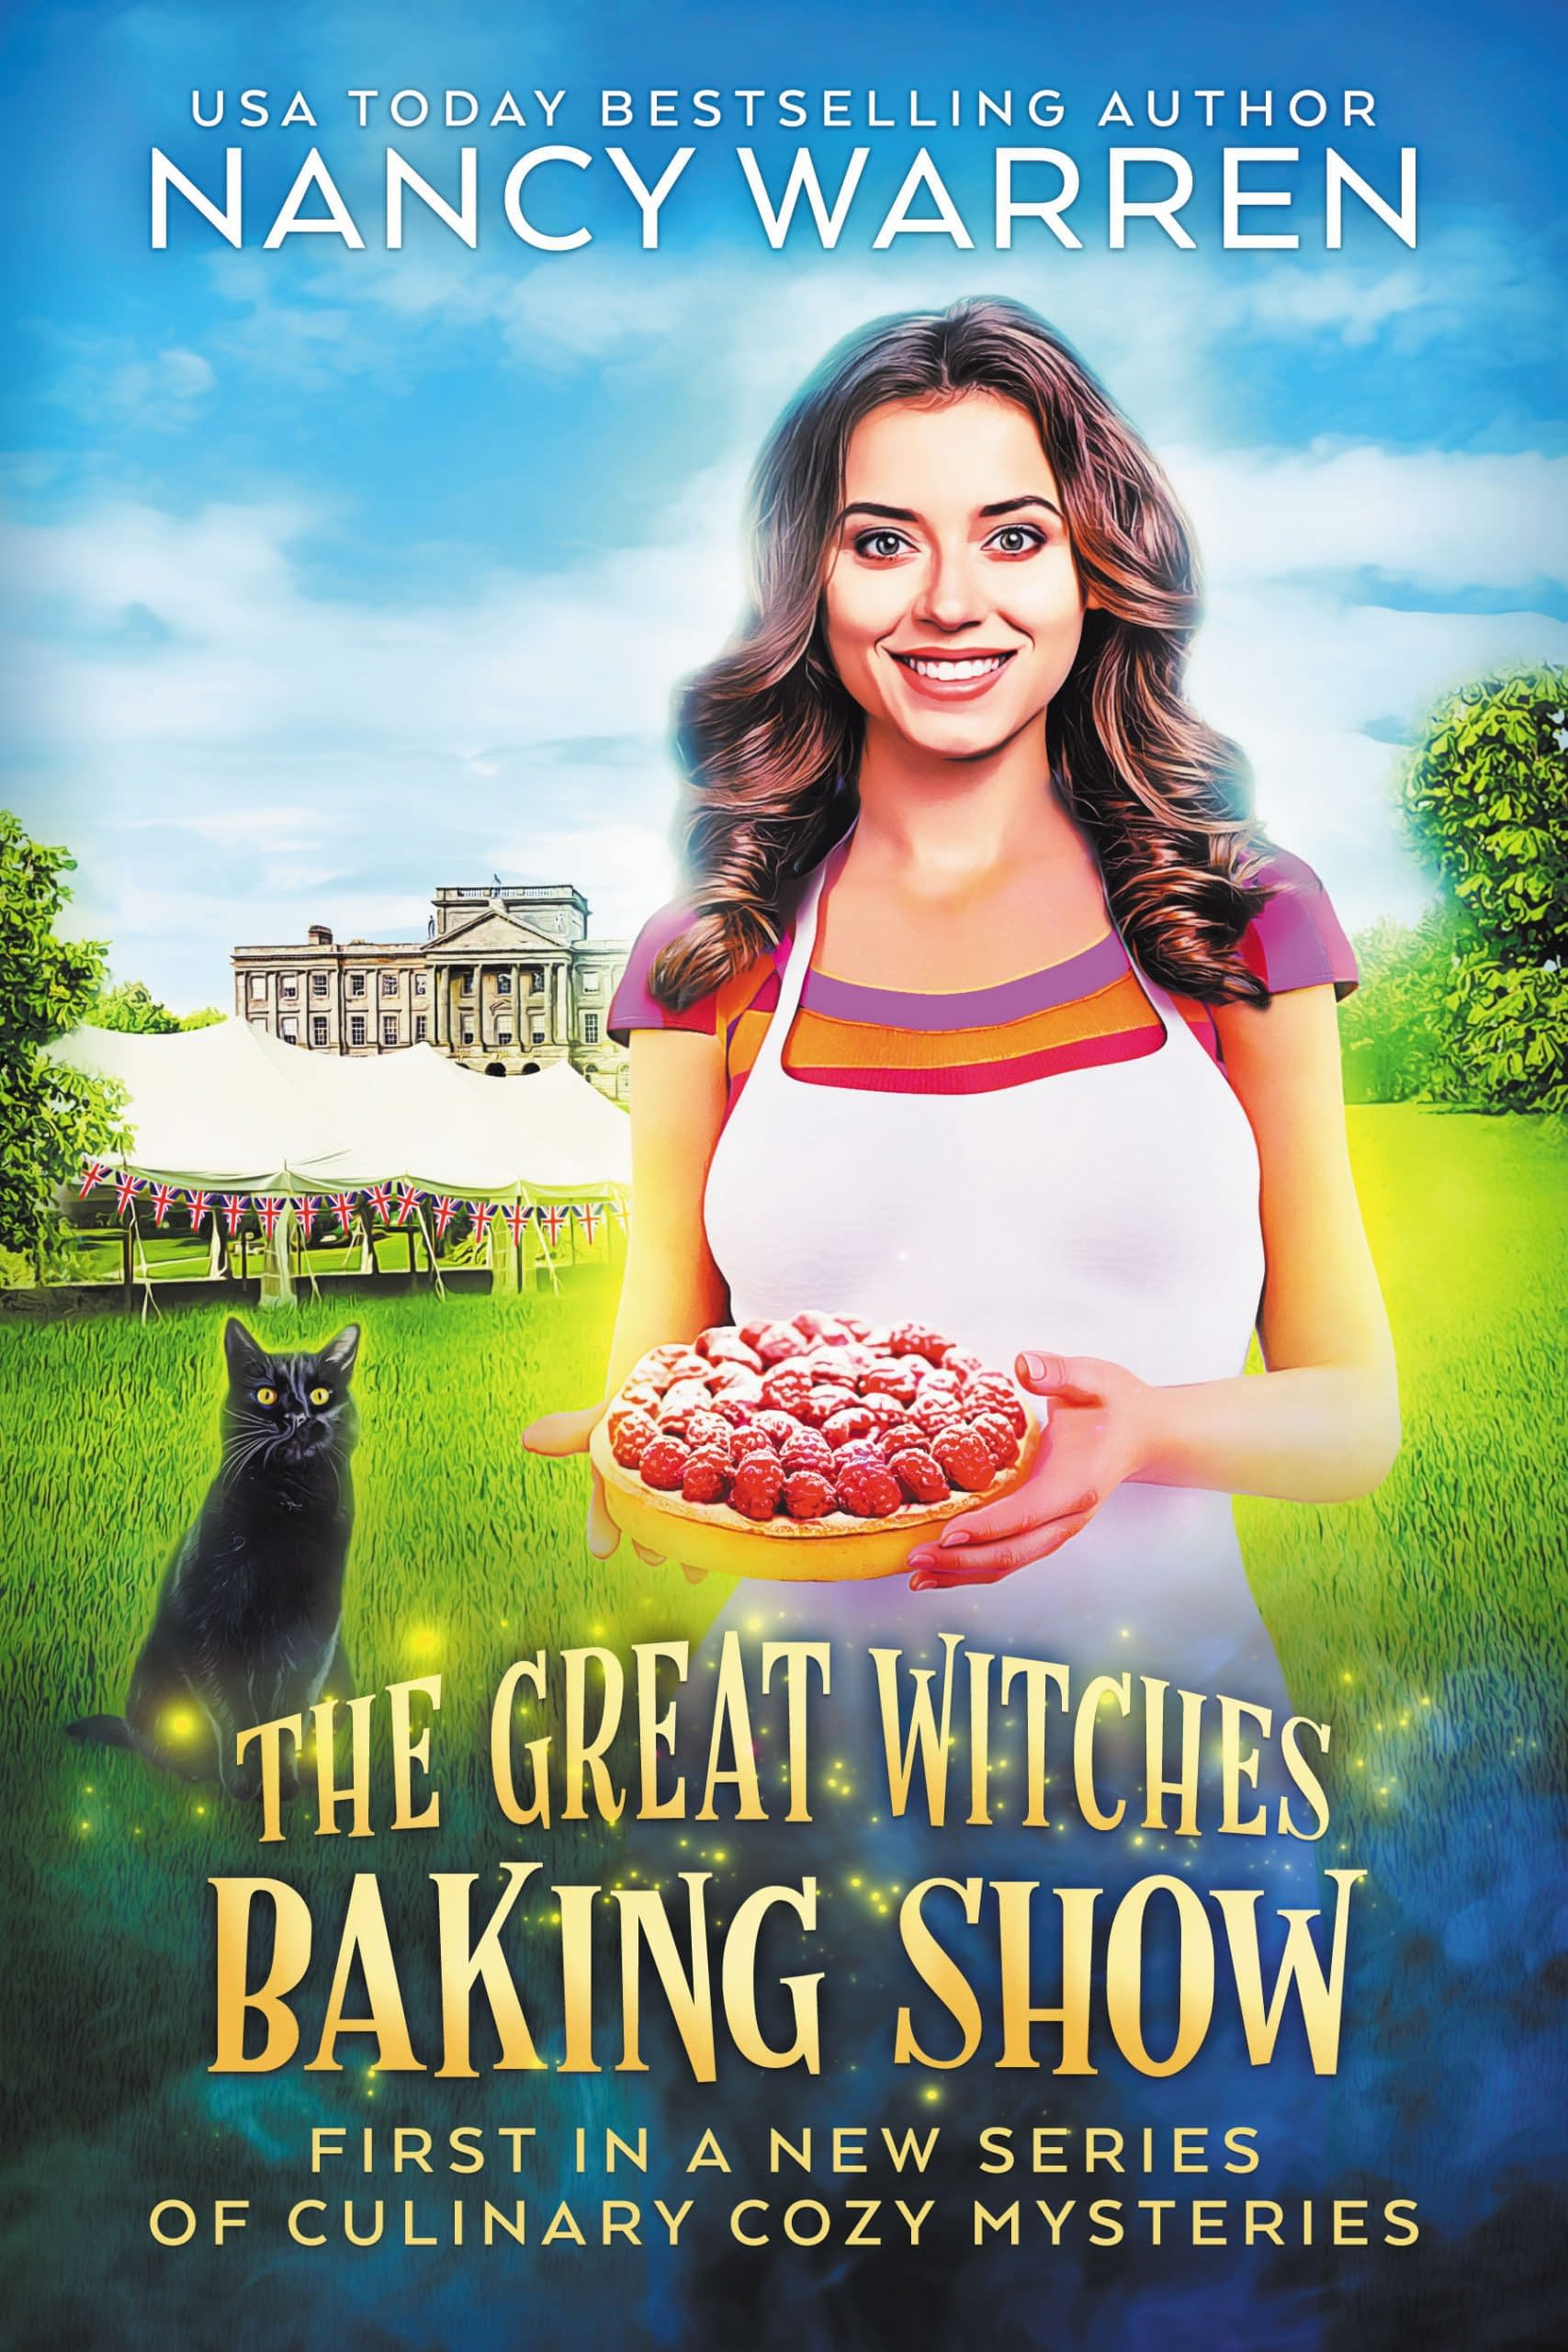 The Great Witches Baking Show Book Cover